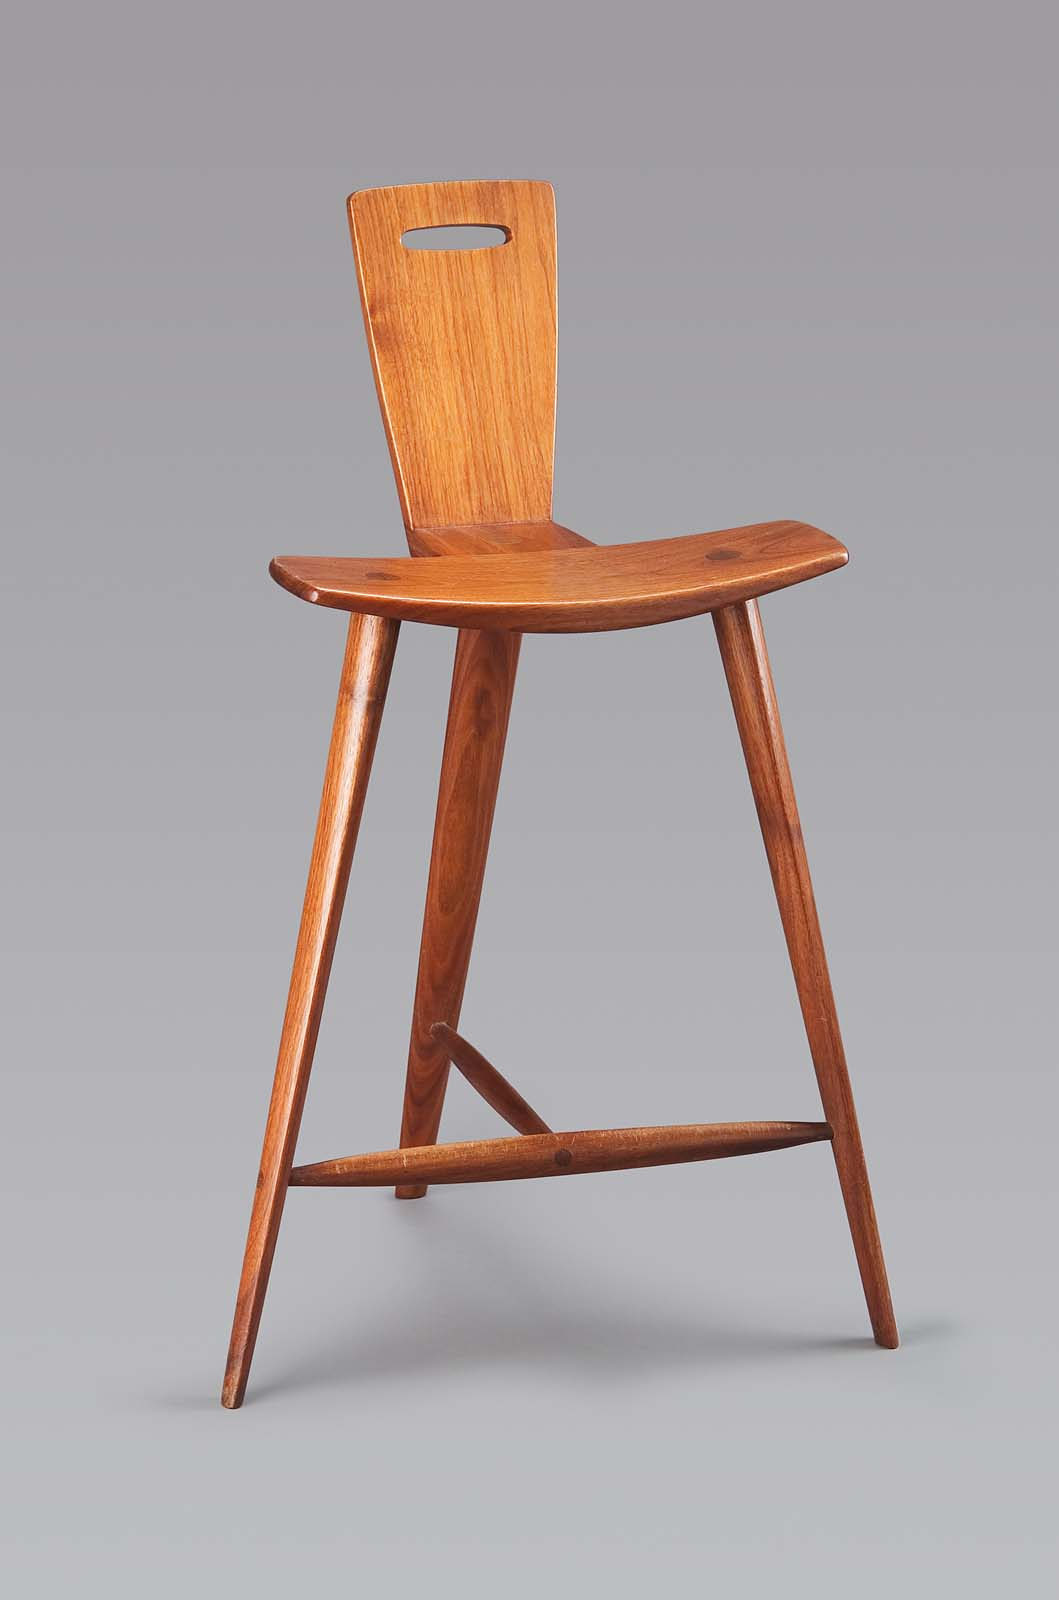 Stool One Of A Pair Mfa For Educators